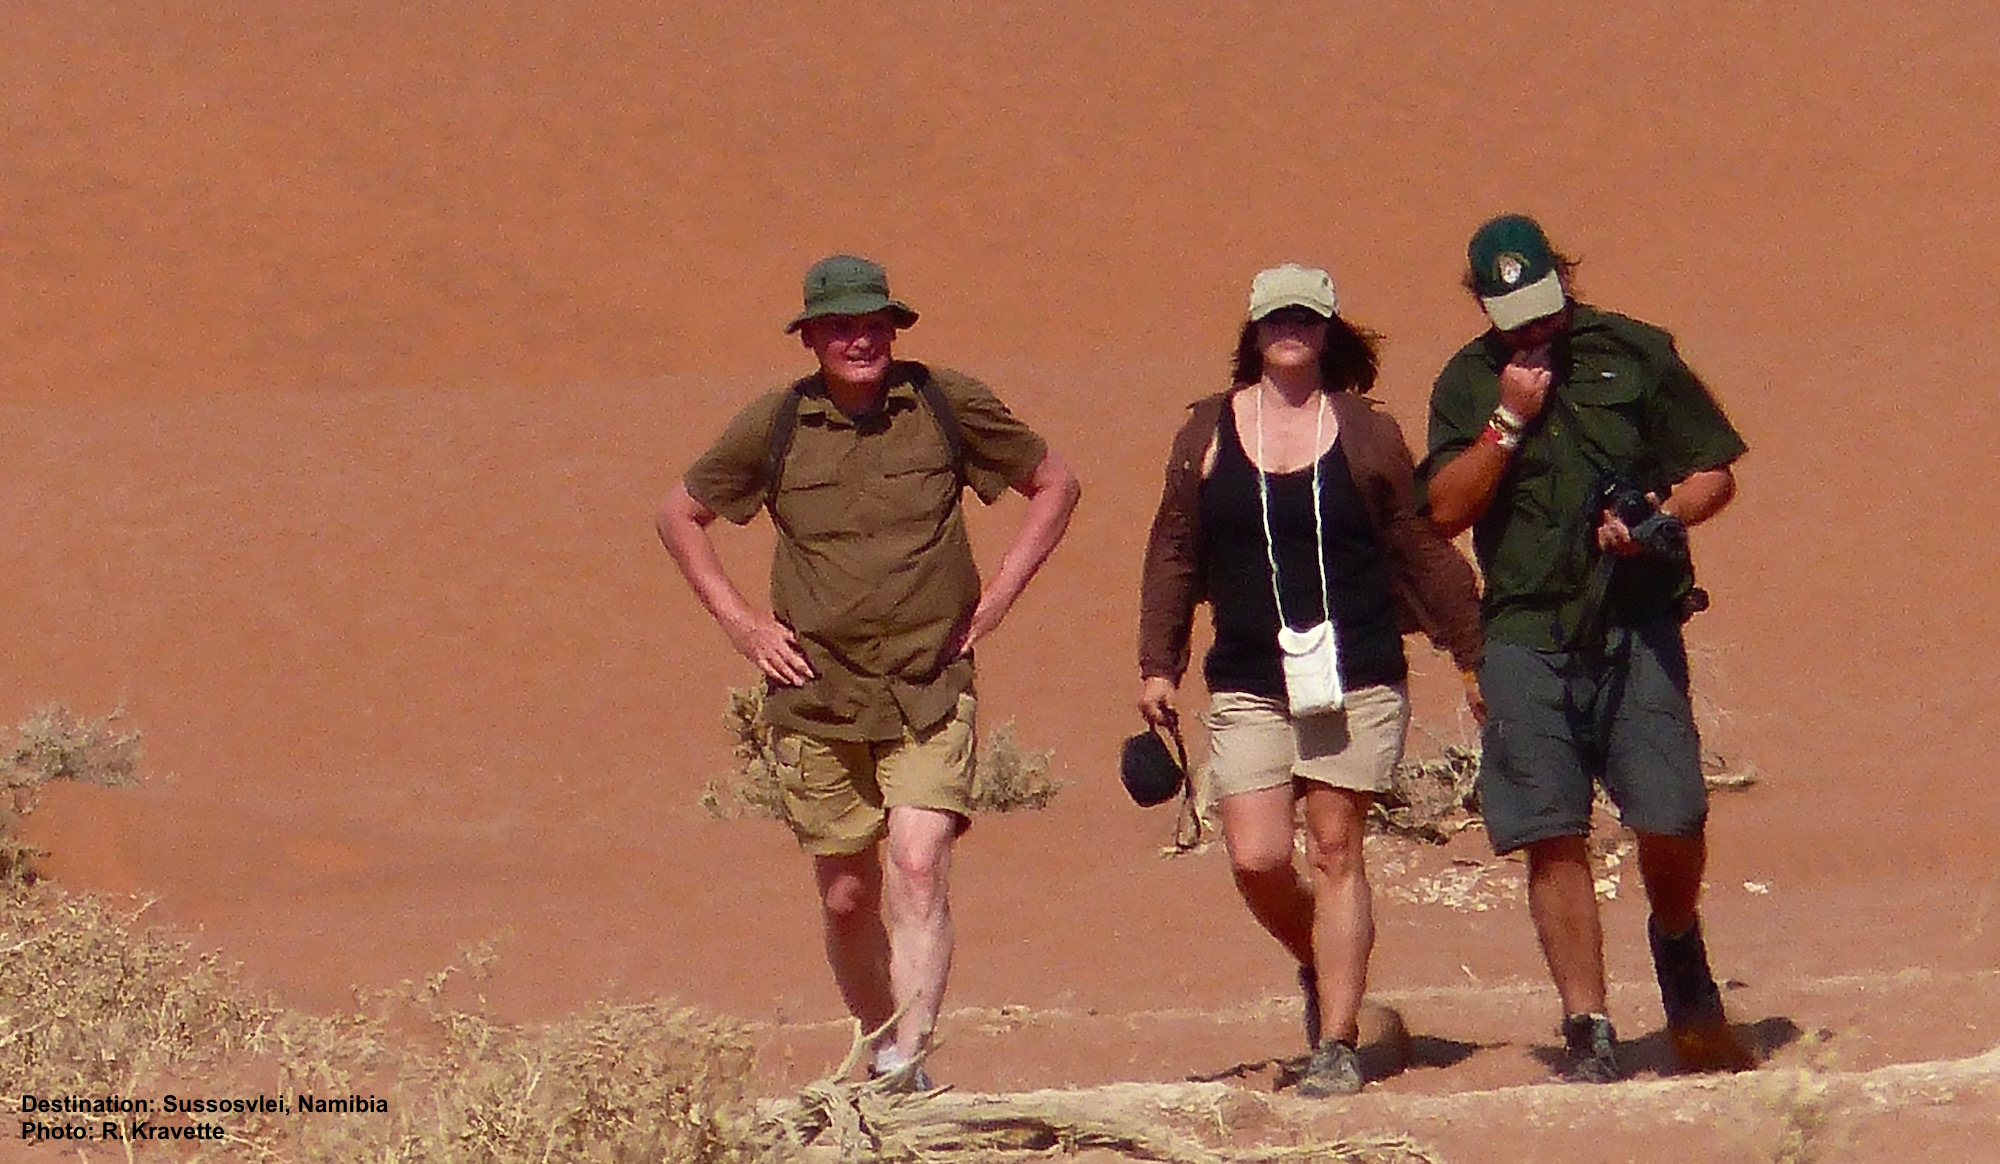 Remember that group up top? This is hours later in +100F (+38C). That wavey effect on the image is heat. while the rest of us finally got out of direct sun, these three continued up the highest dune in Sossusvlei, Namibia. when they recovered they told us why the sand was red, what kind of beetle they saw, and how old the salt flats were. Yup: Enthusiasts all three! Image: ©R. Kravette